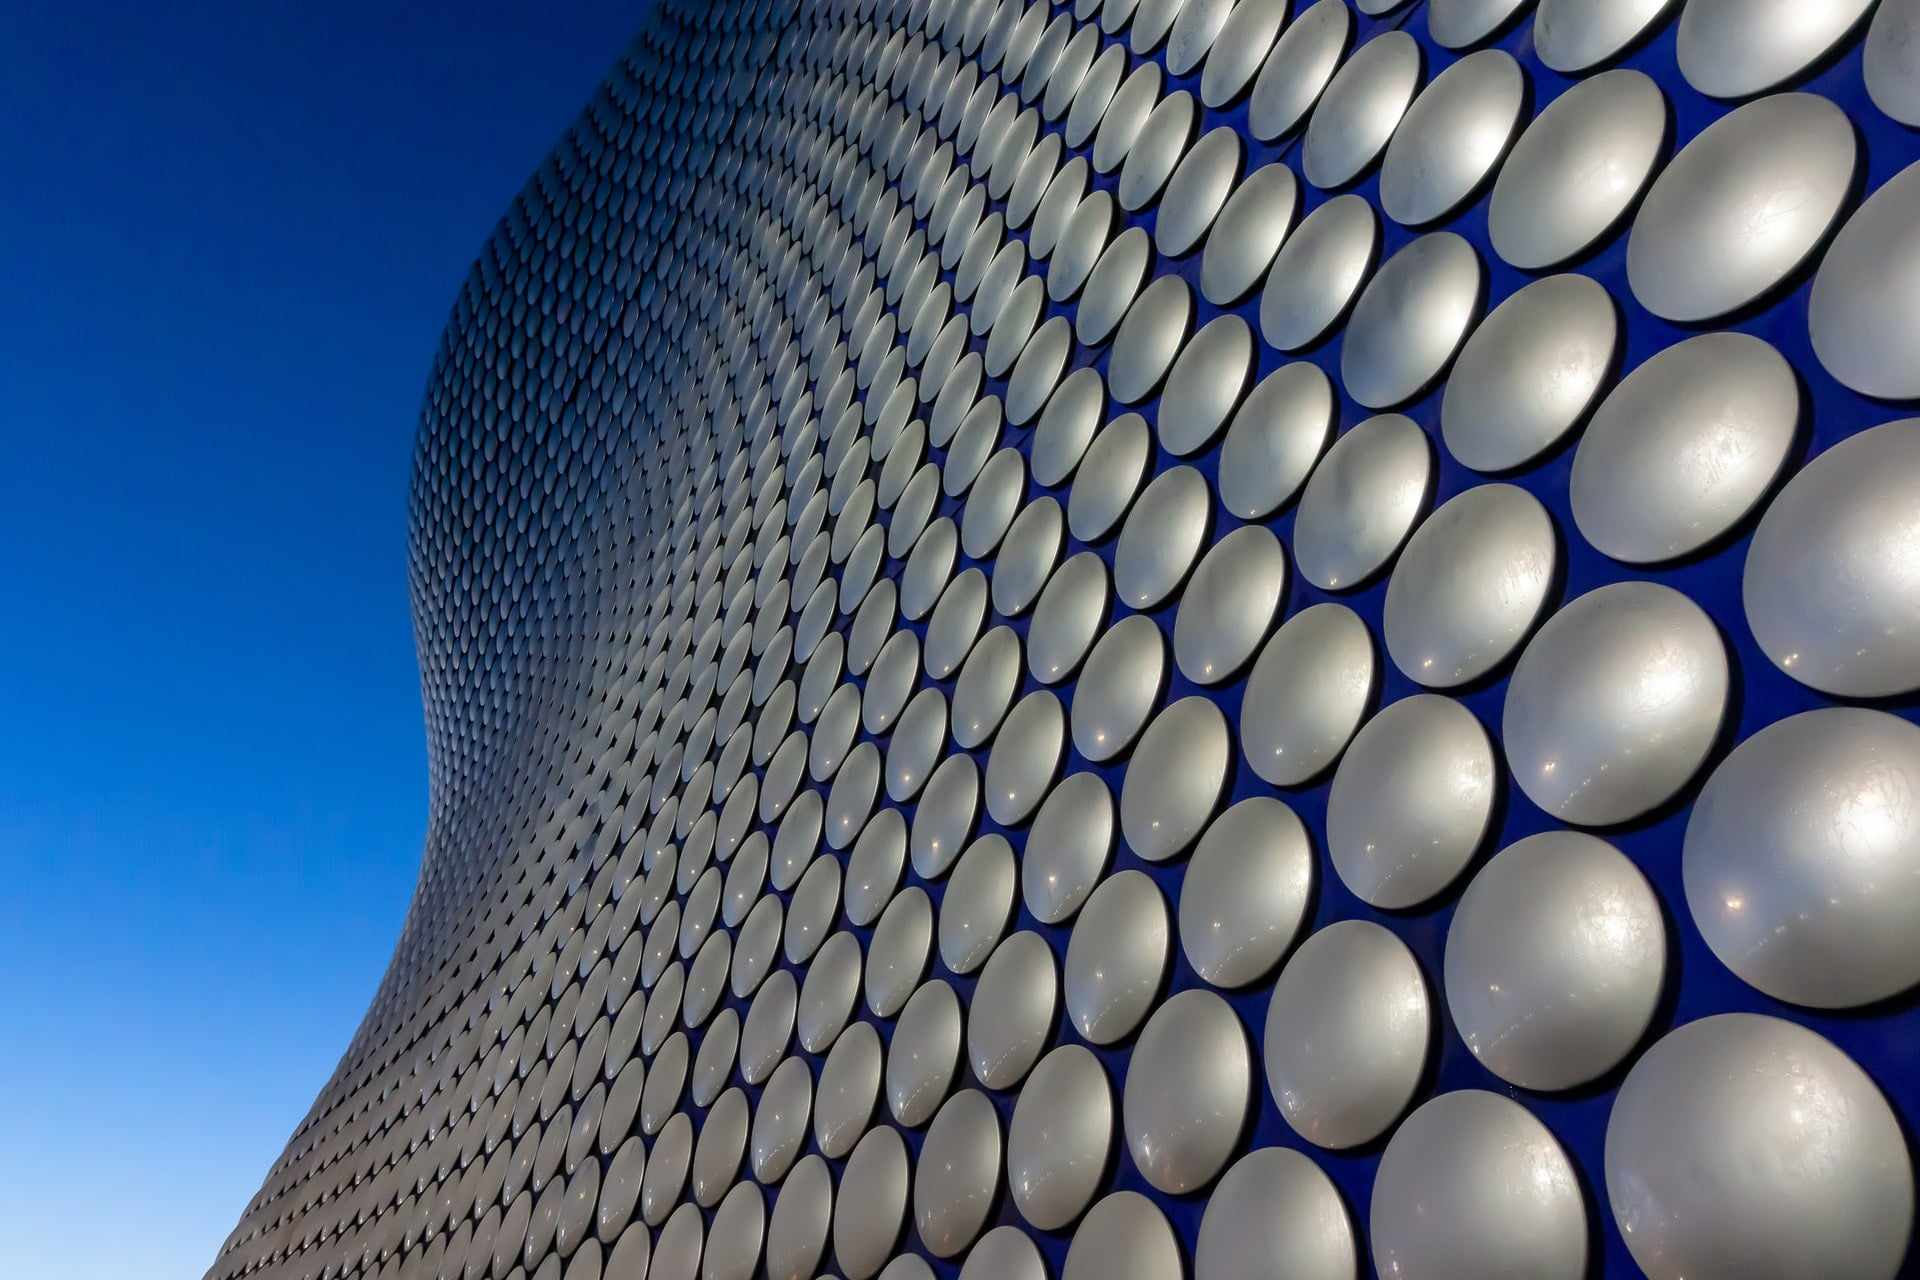 exterior-of-shopping-centre-covered-in-circles-birmingham-bullring